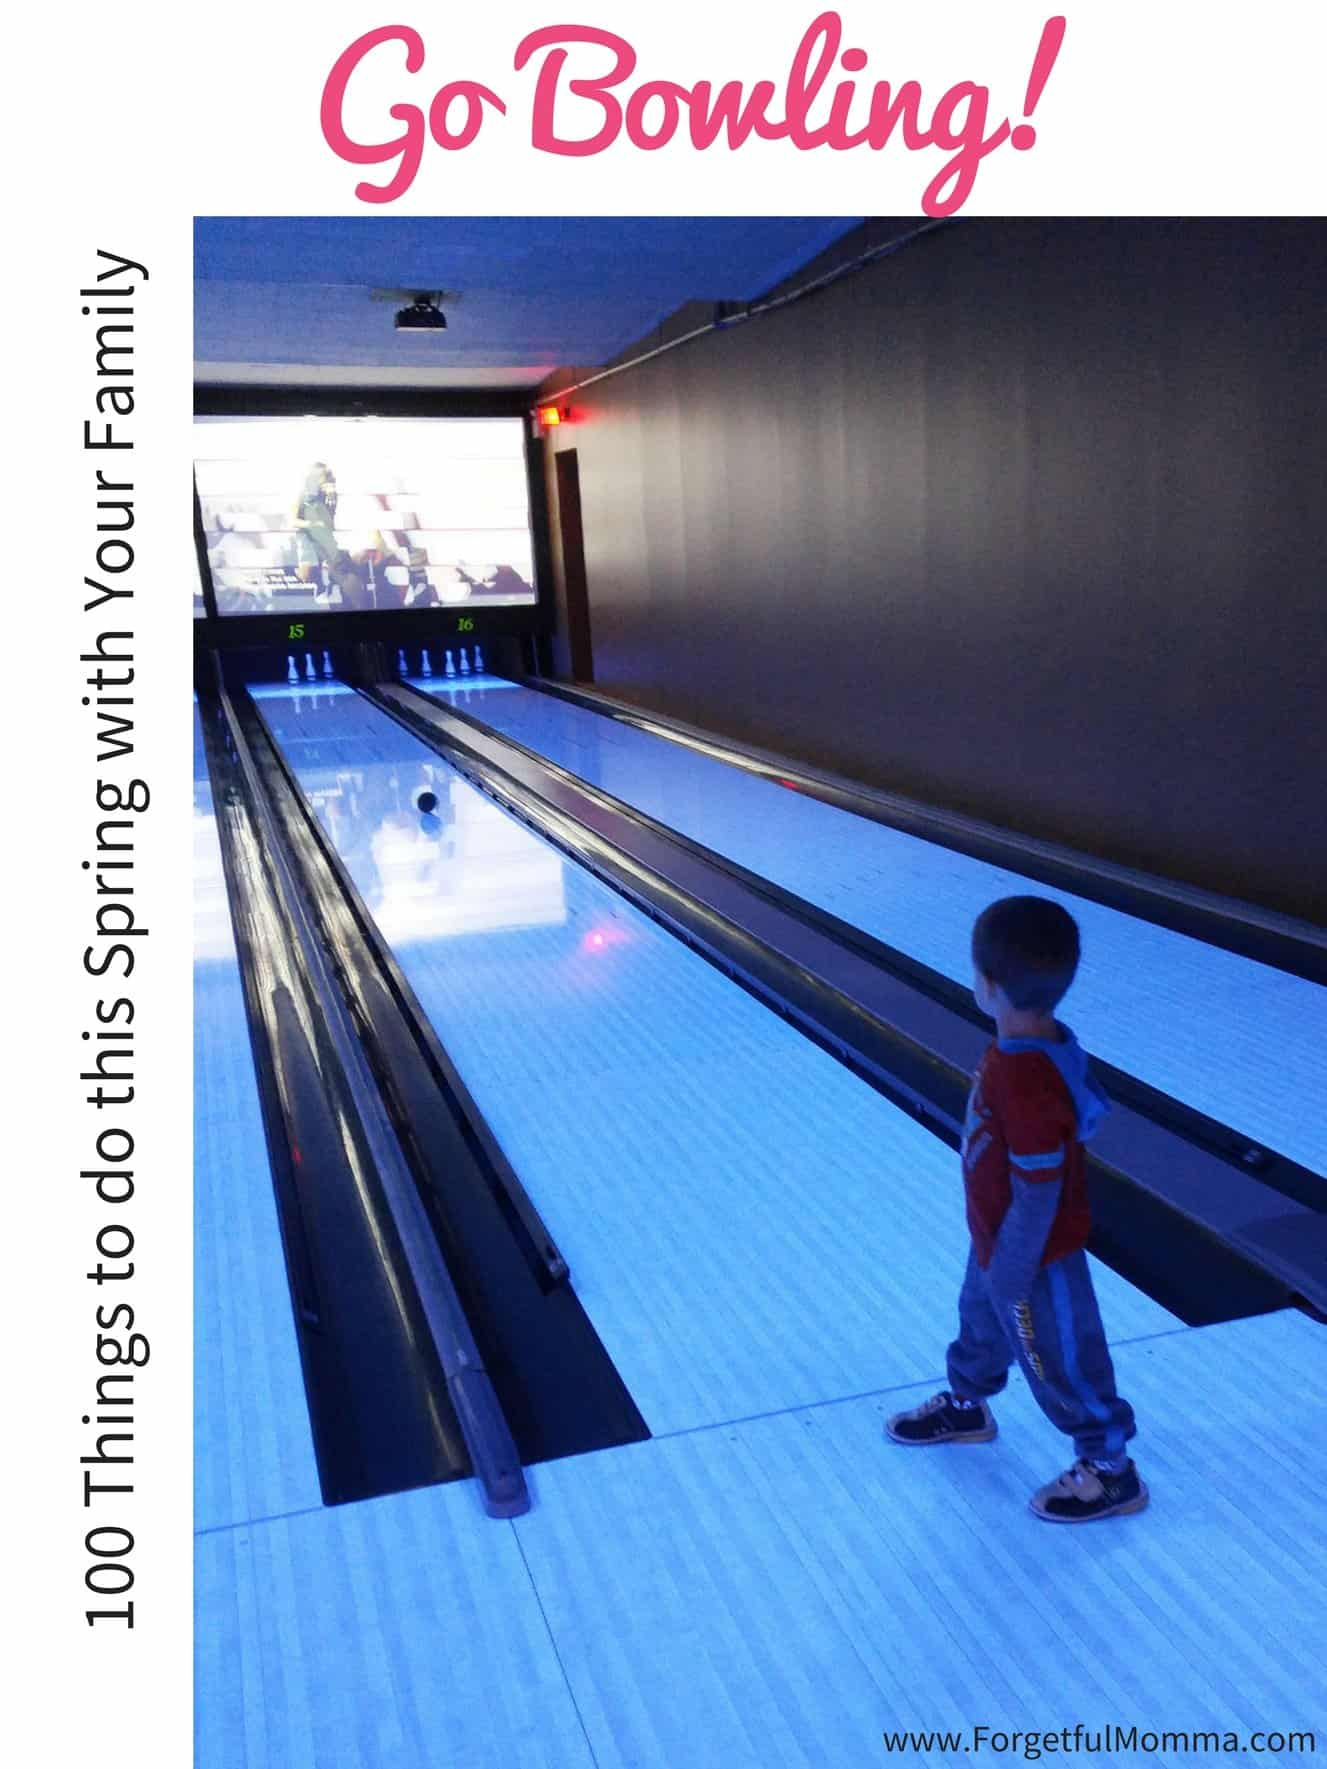 100 Things to do this Spring with Your Family - go bowling